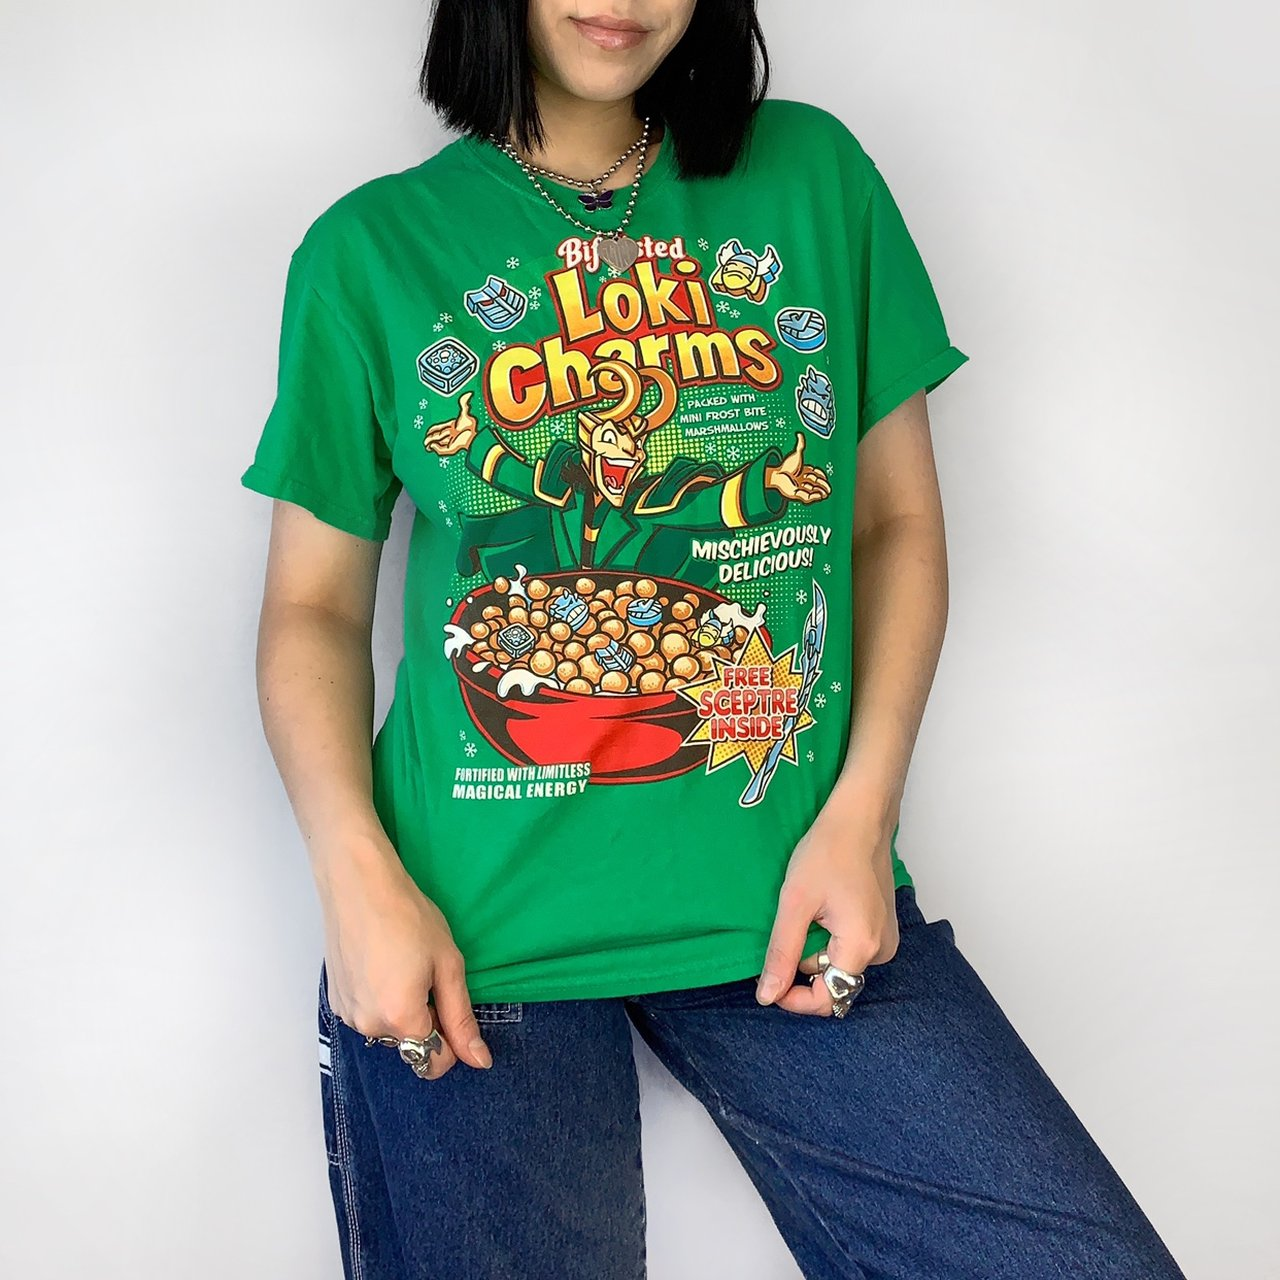 6ce62e212d8 Bifrosted Loki Charms tee